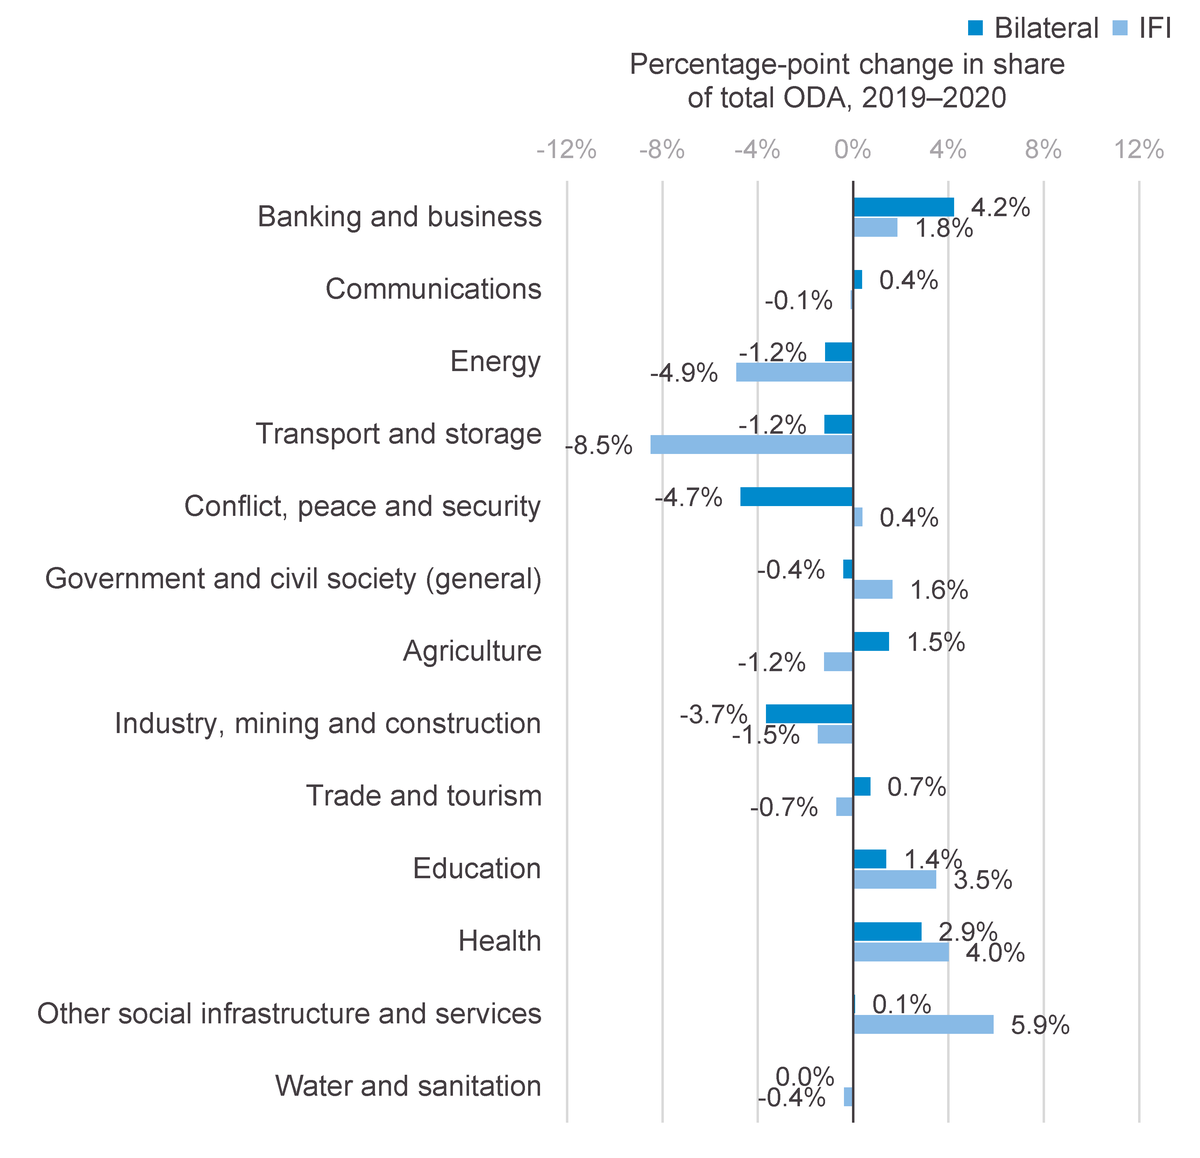 Figure 8: Bilateral donors have focused aid commitments on both health and banking and business, at the expense of other sectors, while IFIs have seen proportionally greater focus on social protection, education and health